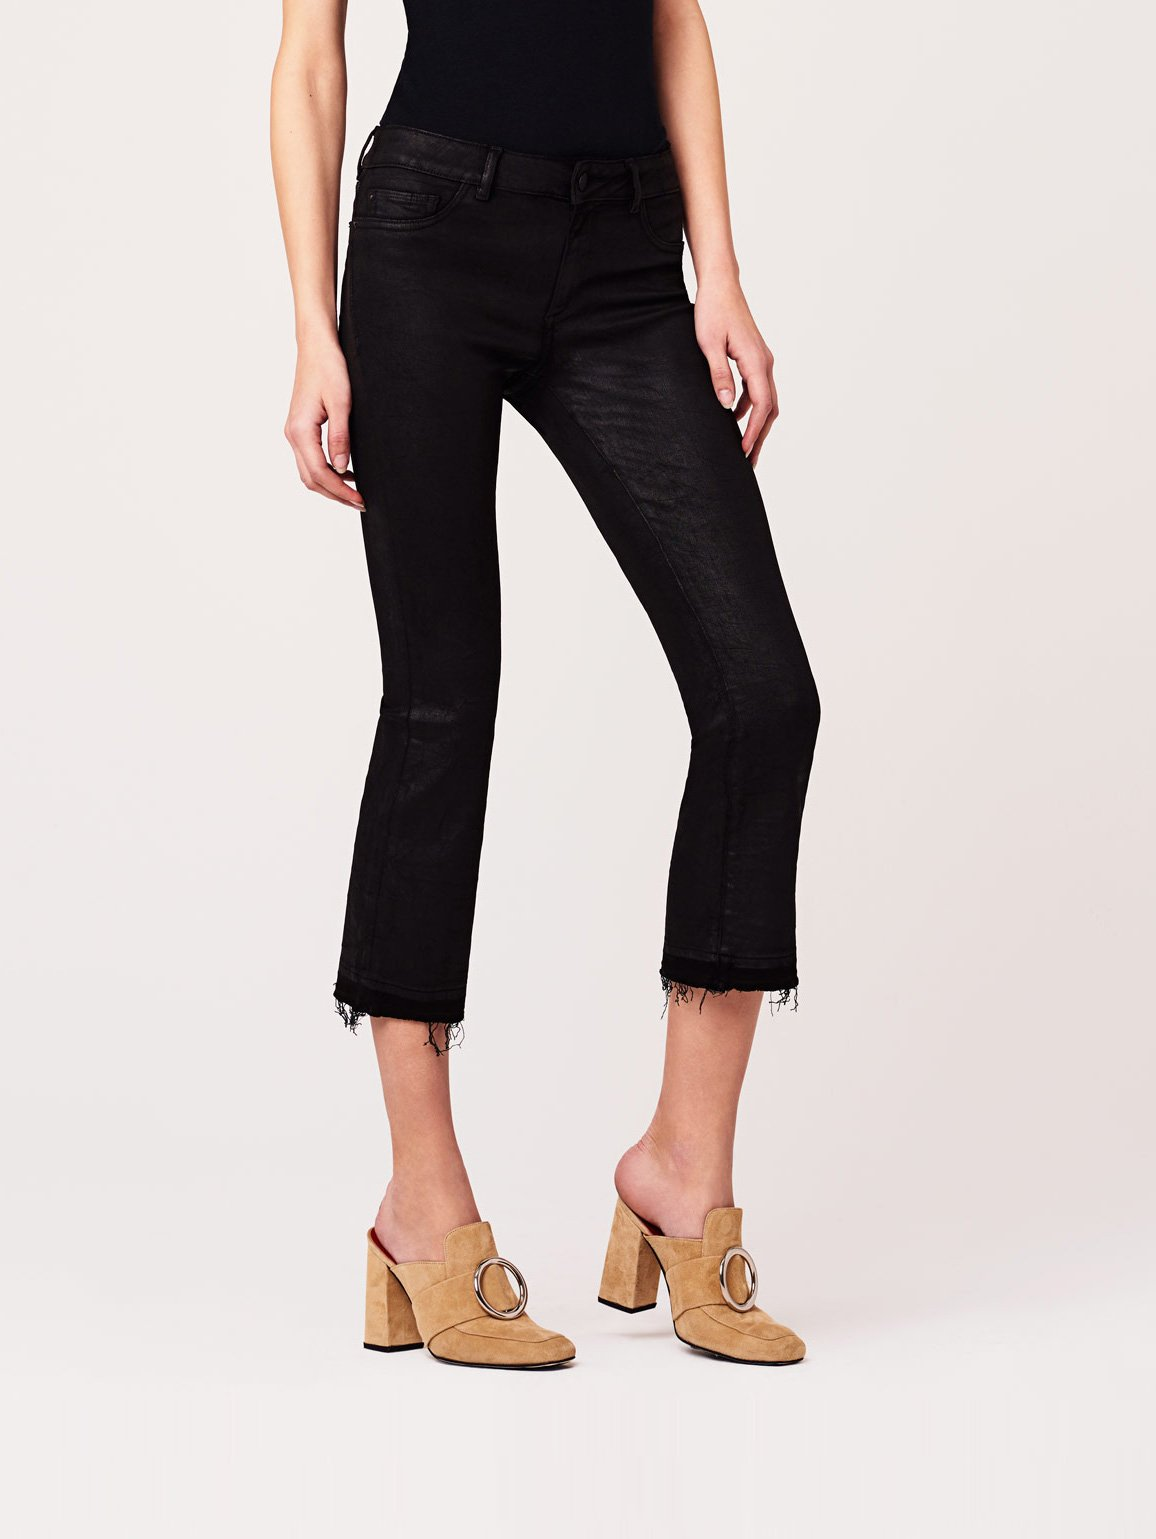 Lara Mid Rise Cropped Flare | Harker